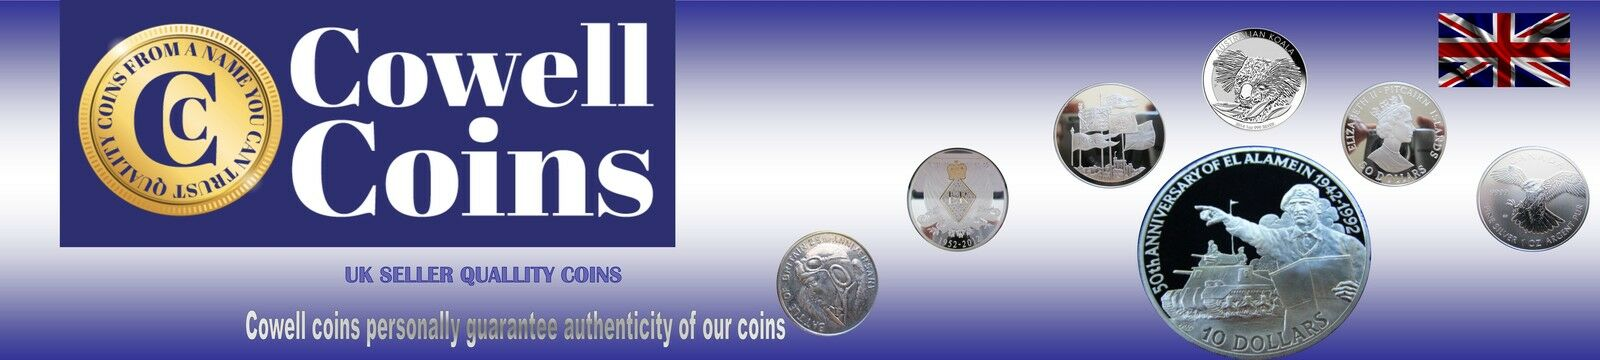 Cowell-coins